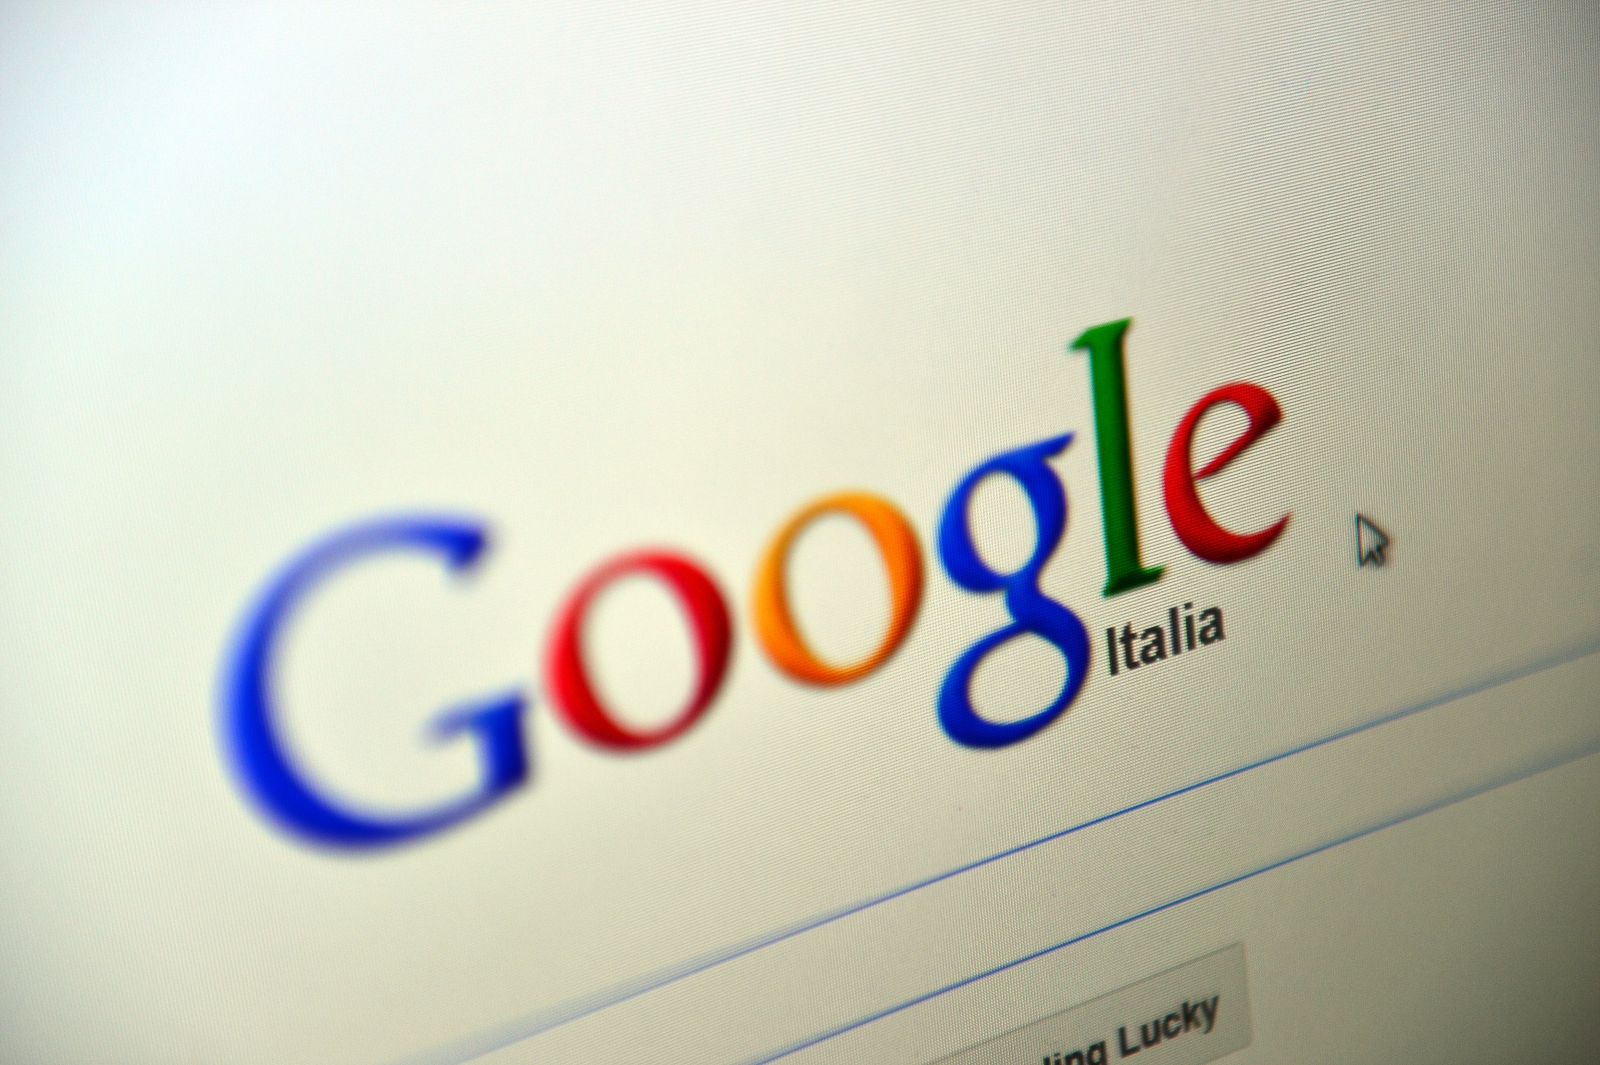 Google and Italy nearing a tax deal